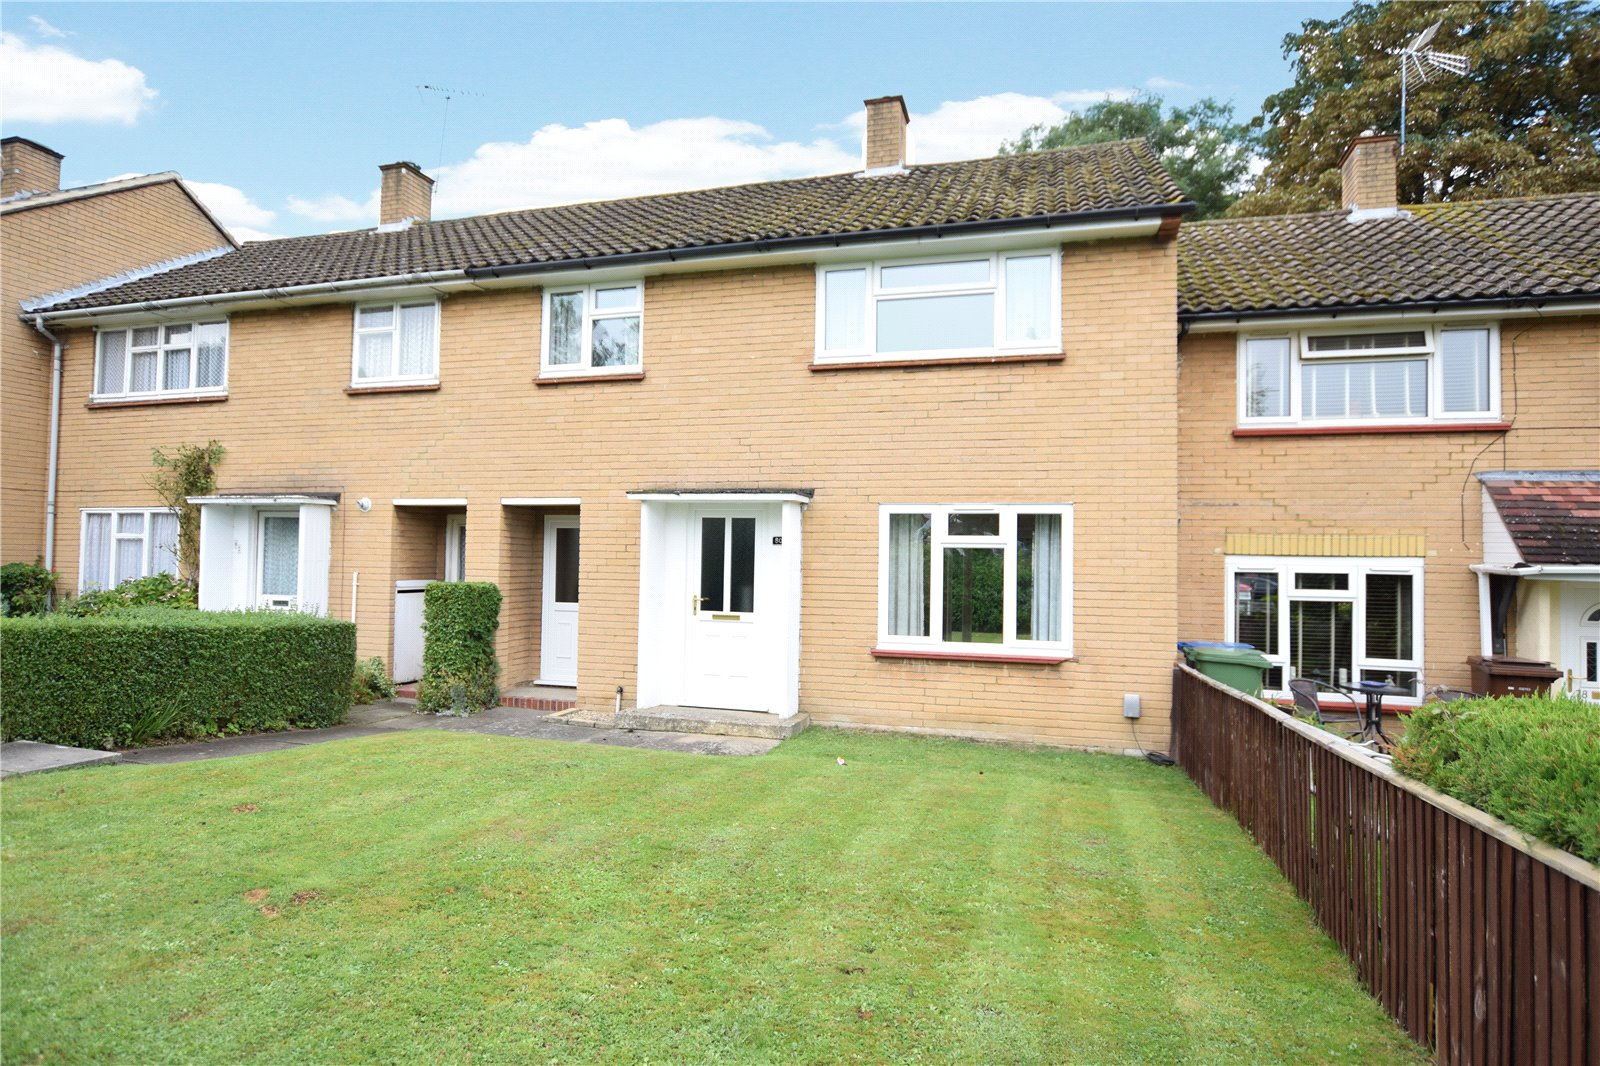 3 Bedrooms Terraced House for sale in Priestwood Avenue, Bracknell, Berkshire, RG42